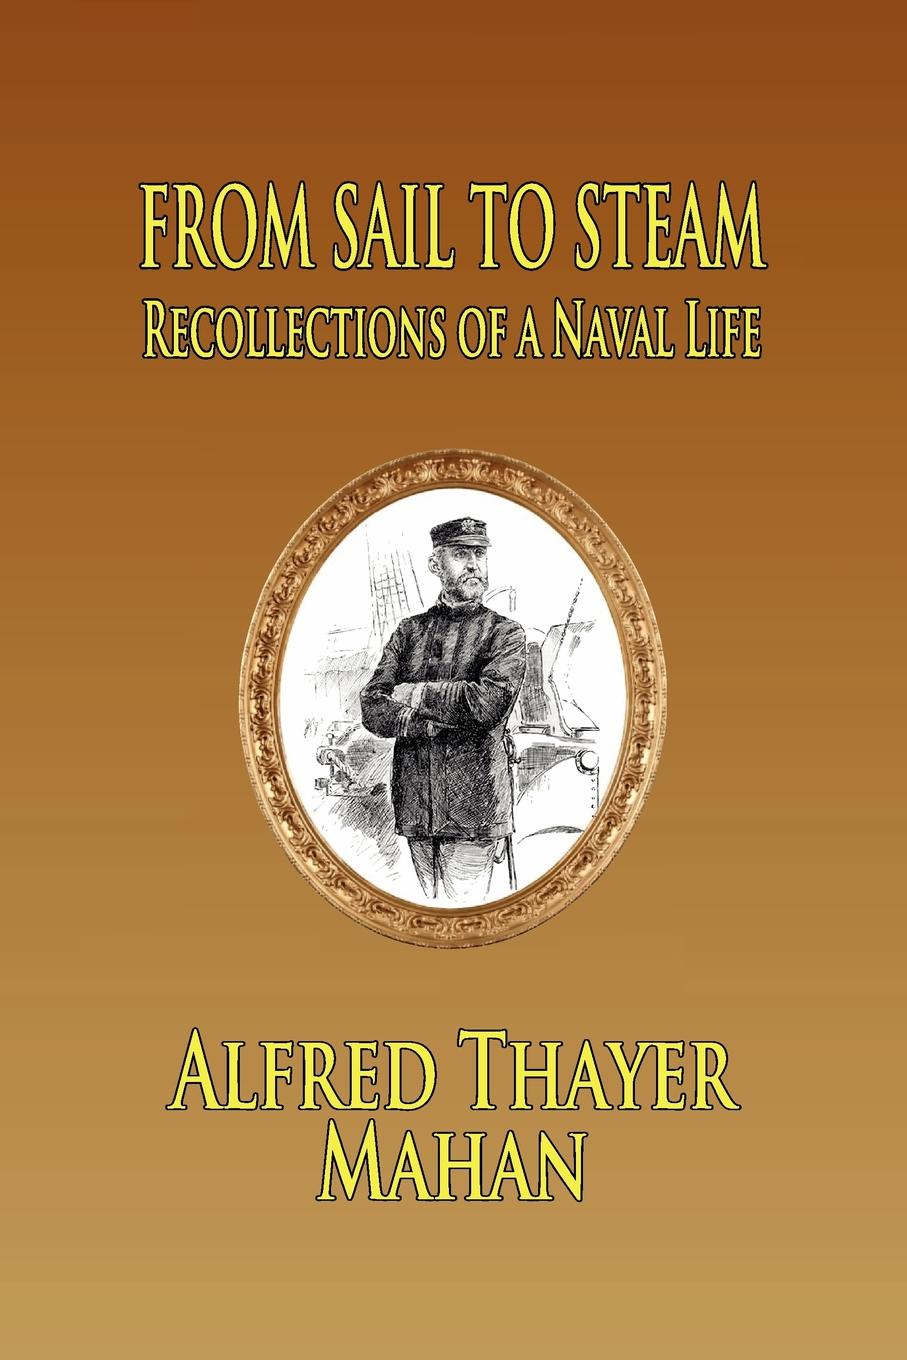 Alfred Thayer Mahan From Sail to Steam. Reflections of a Naval Life alfred thayer mahan from sail to steam recollections of naval life